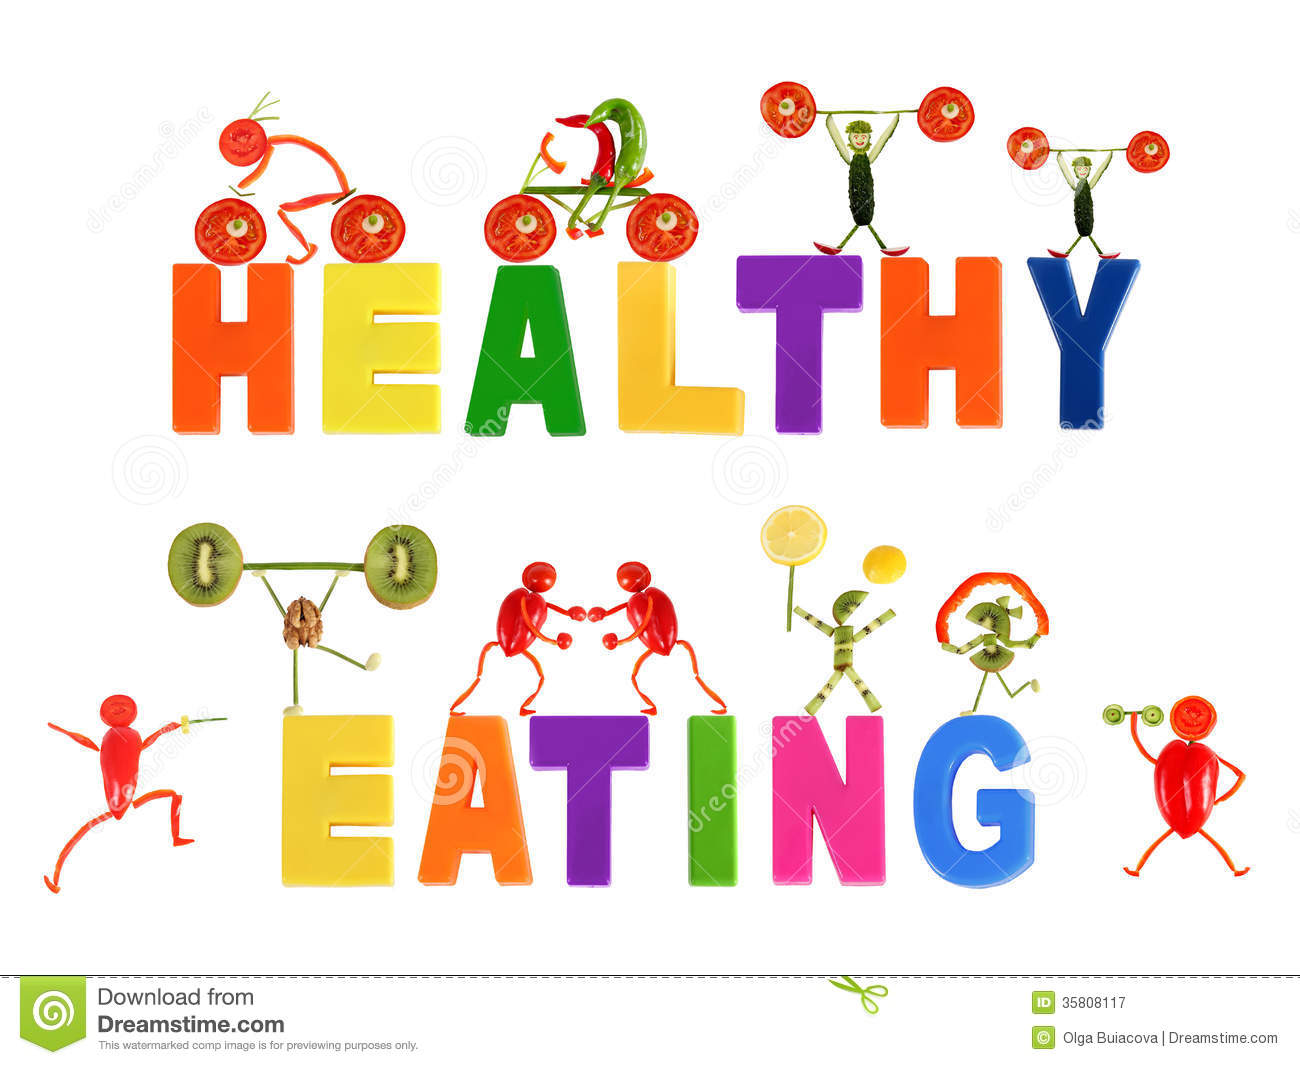 Healthy eating clipart.